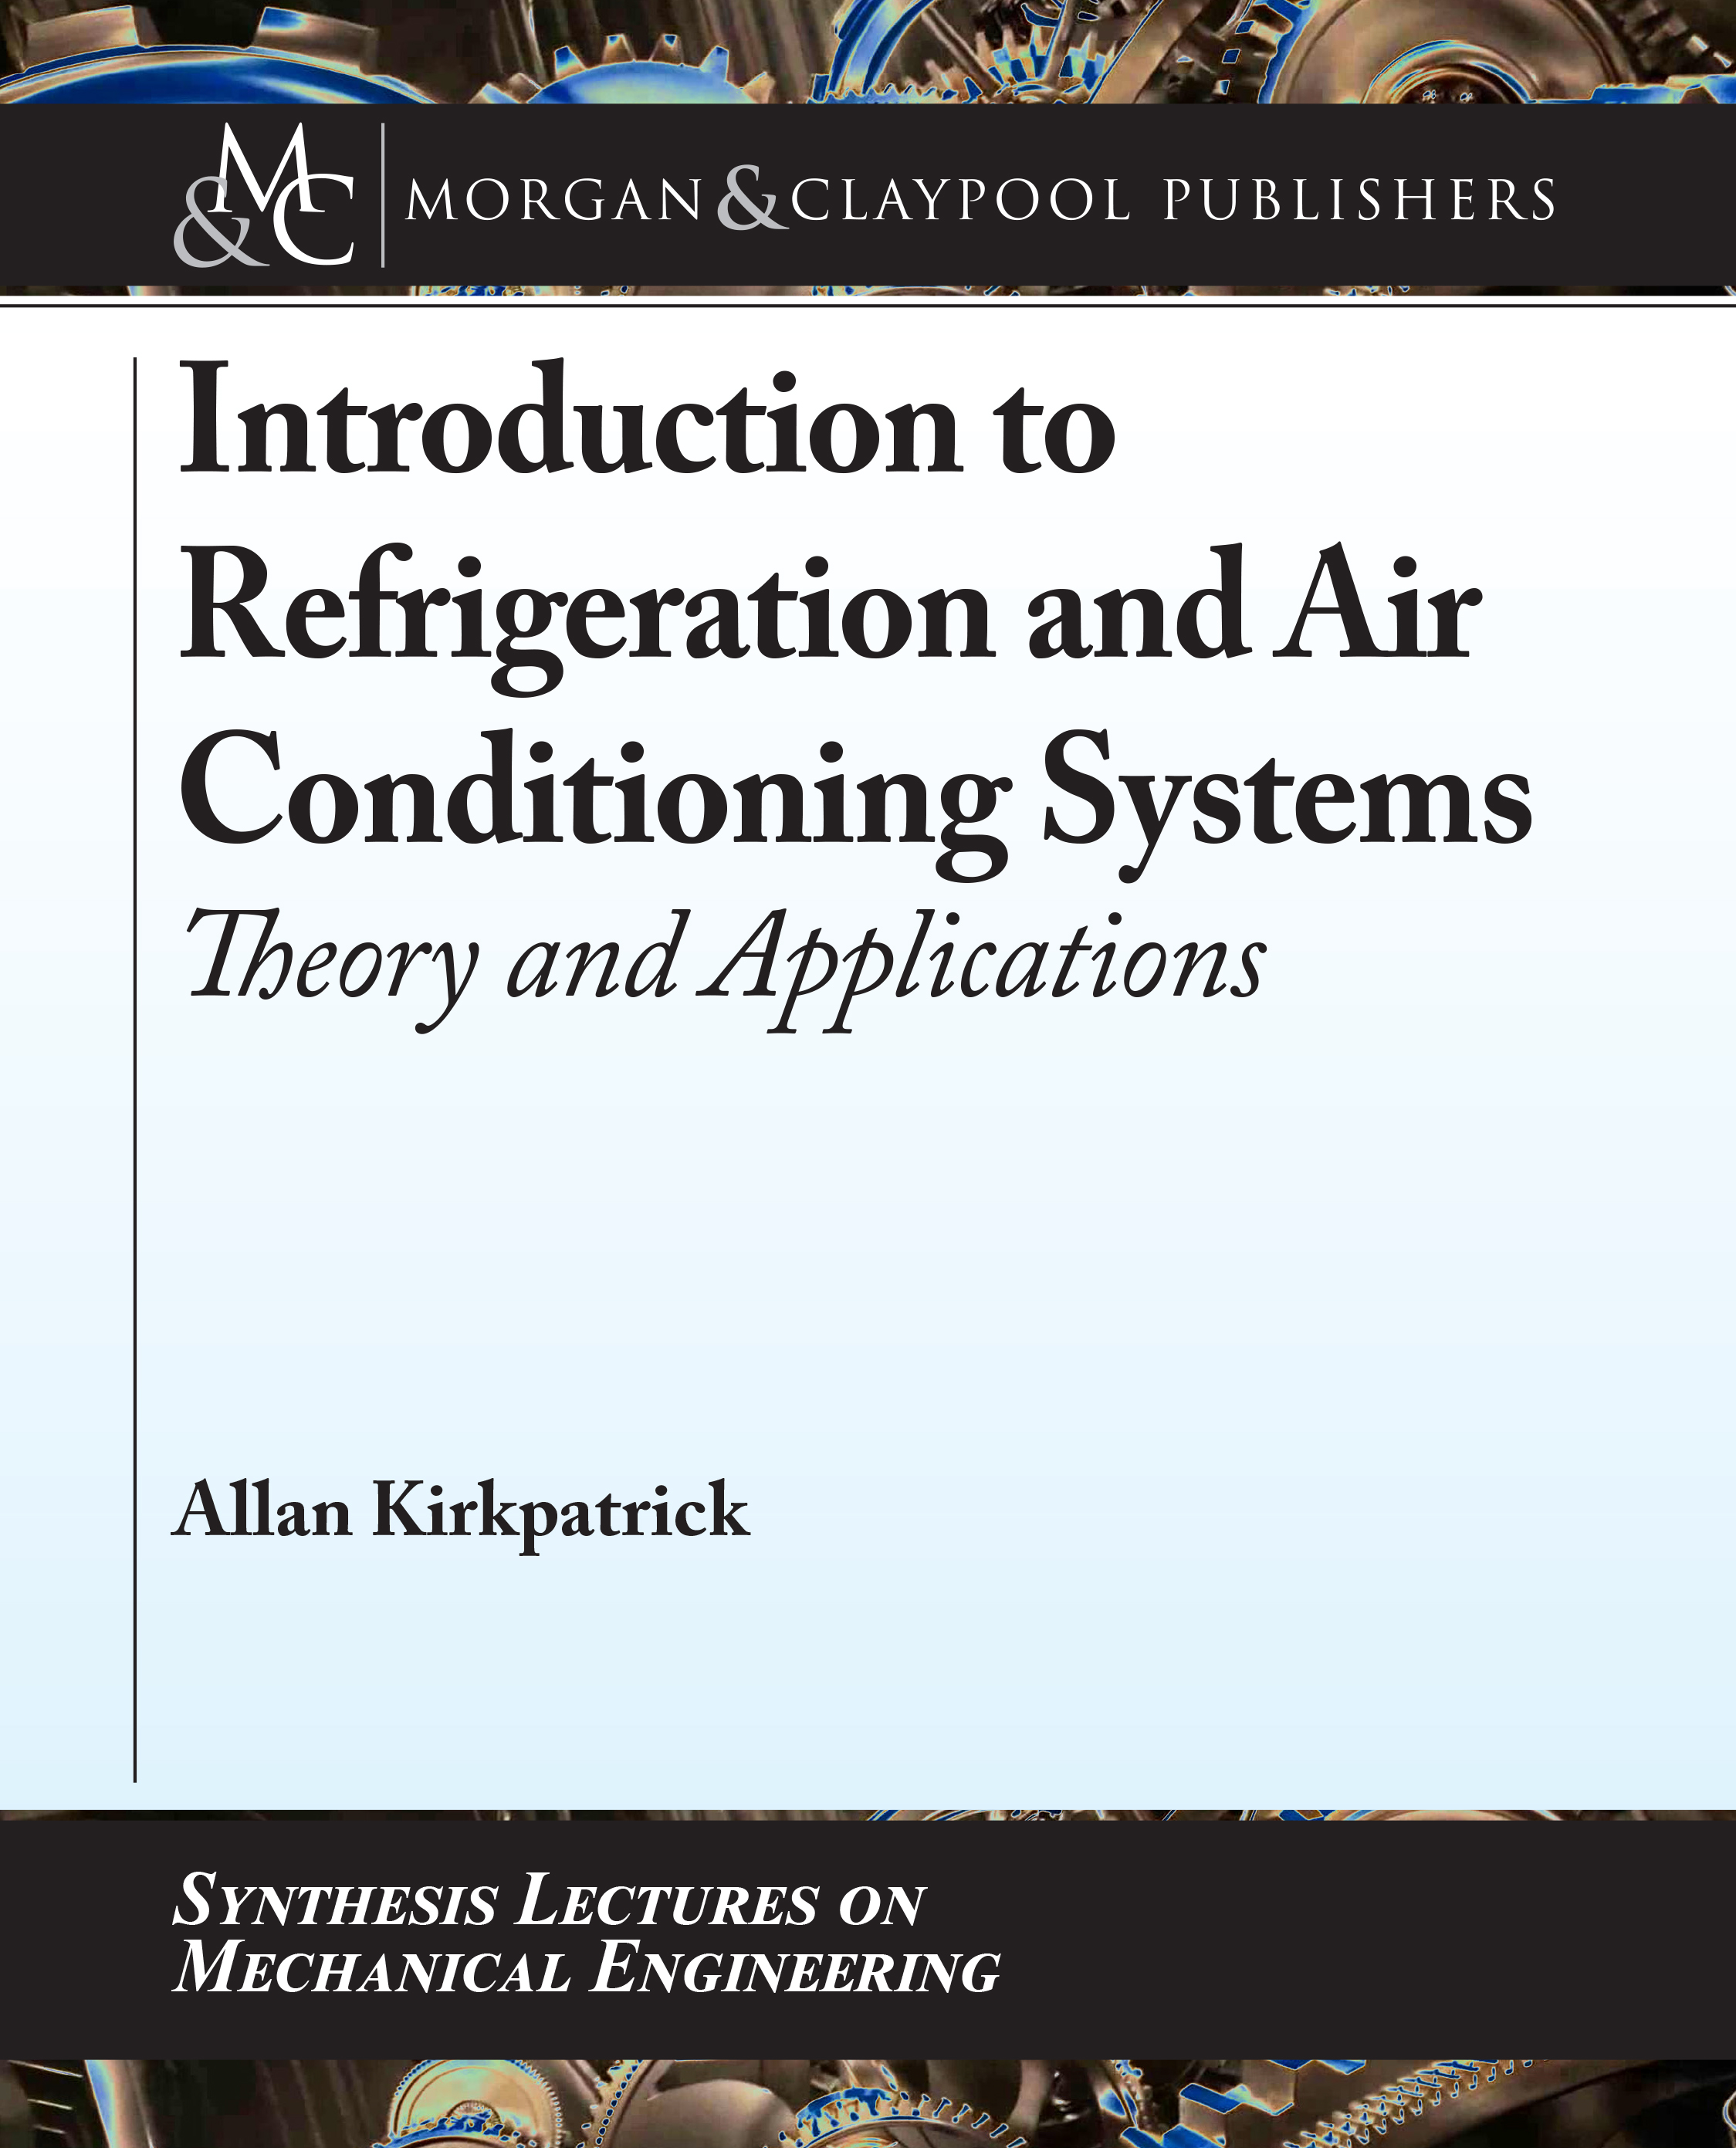 Introduction to Refrigeration and Air Conditioning Systems